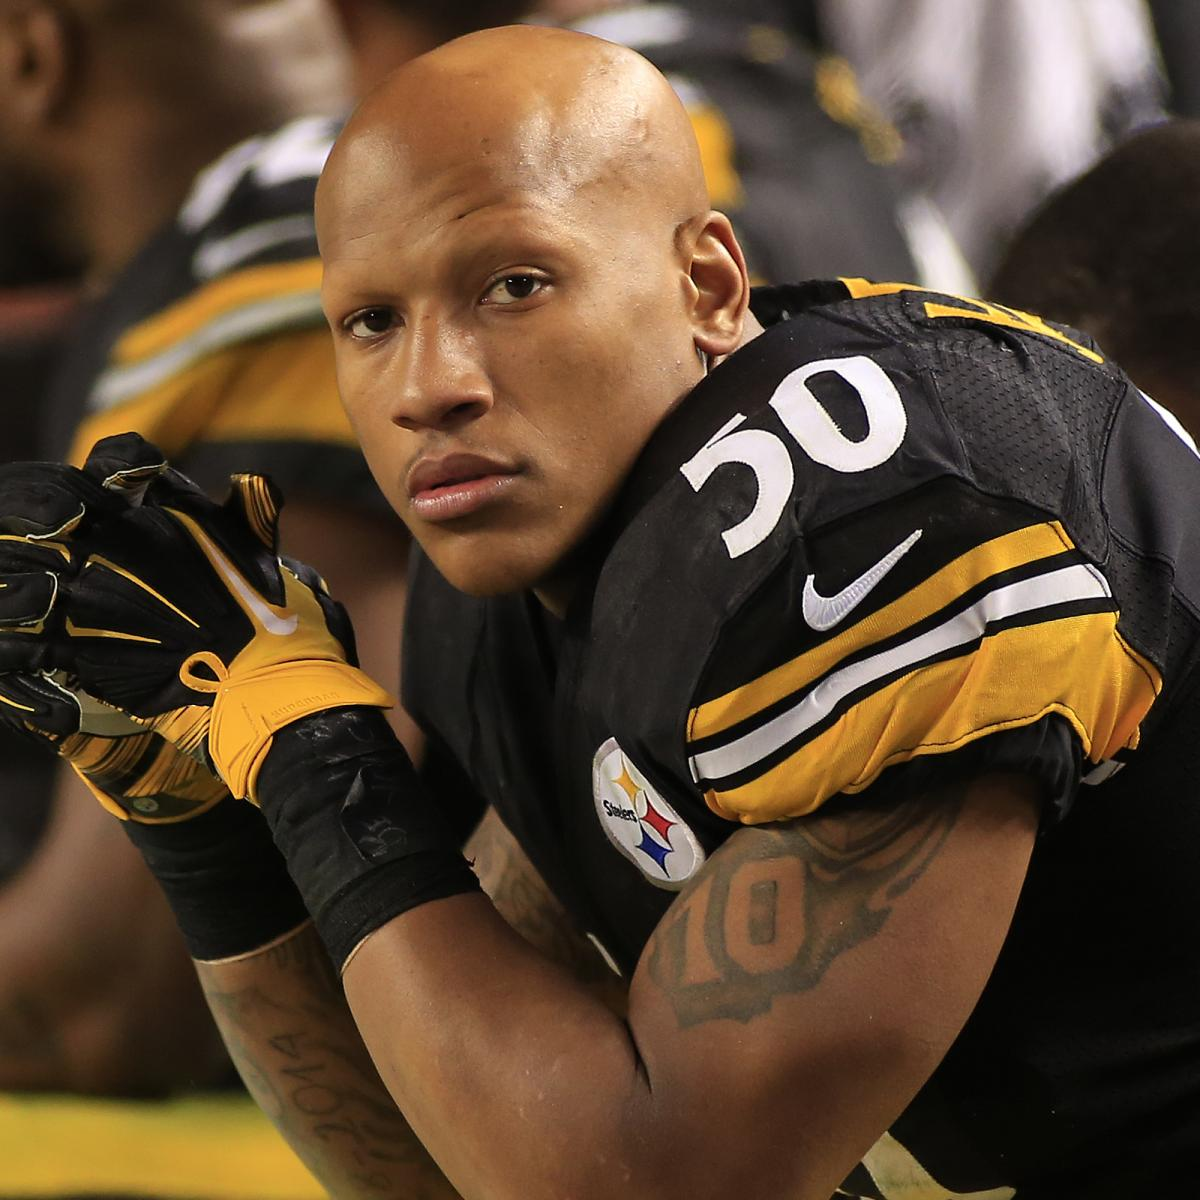 A tense game between Pittsburgh and Cincinnati resulted in a severe spinal injury by Shazier and players from both teams being suspended for illegal hits